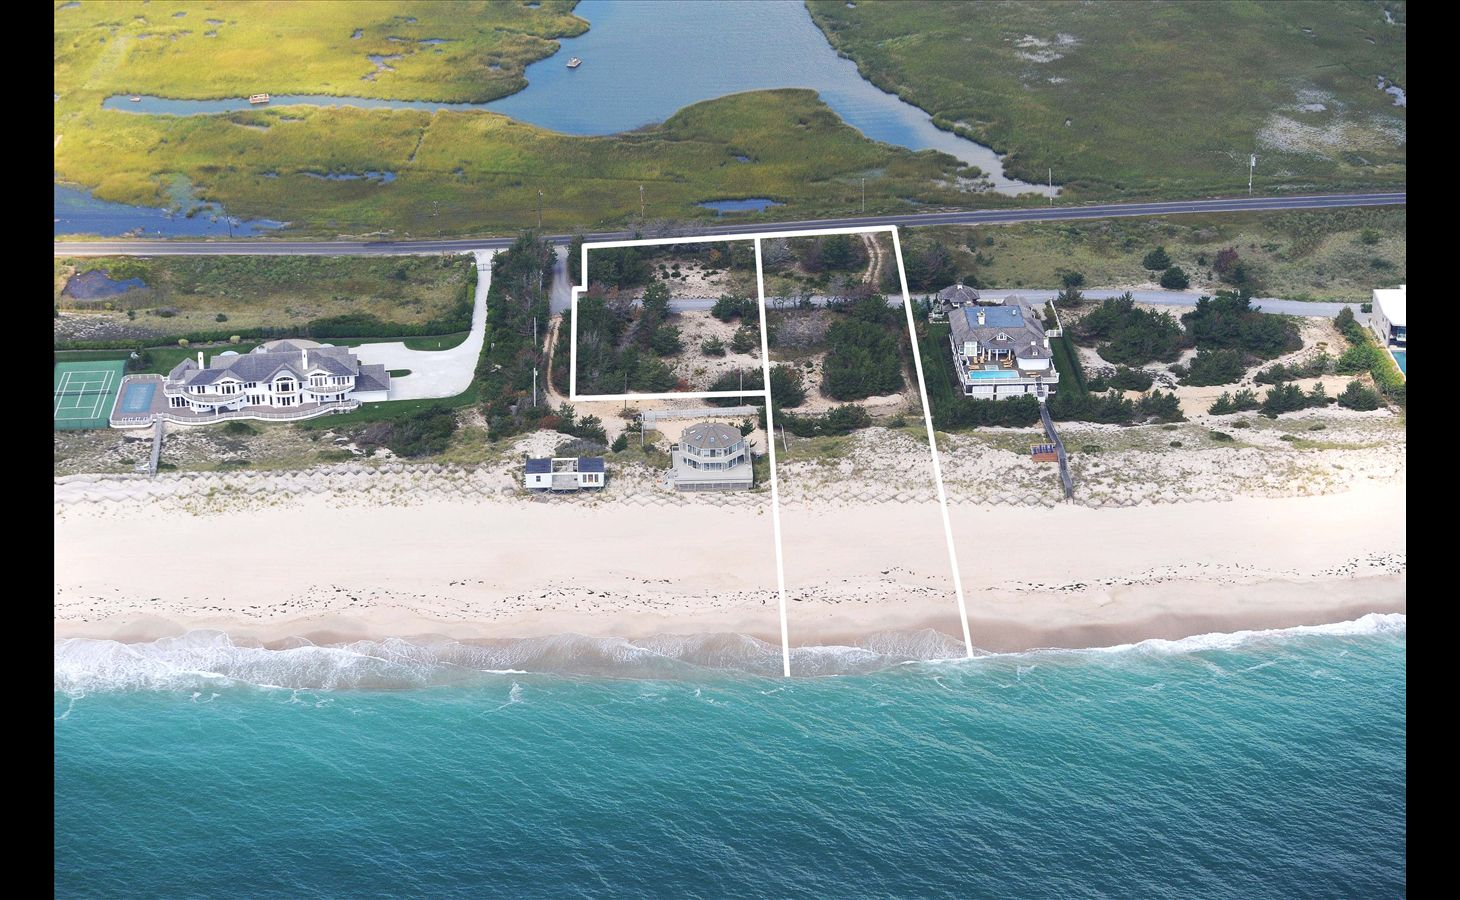 71A & 73A Dune Road East Quogue, New York